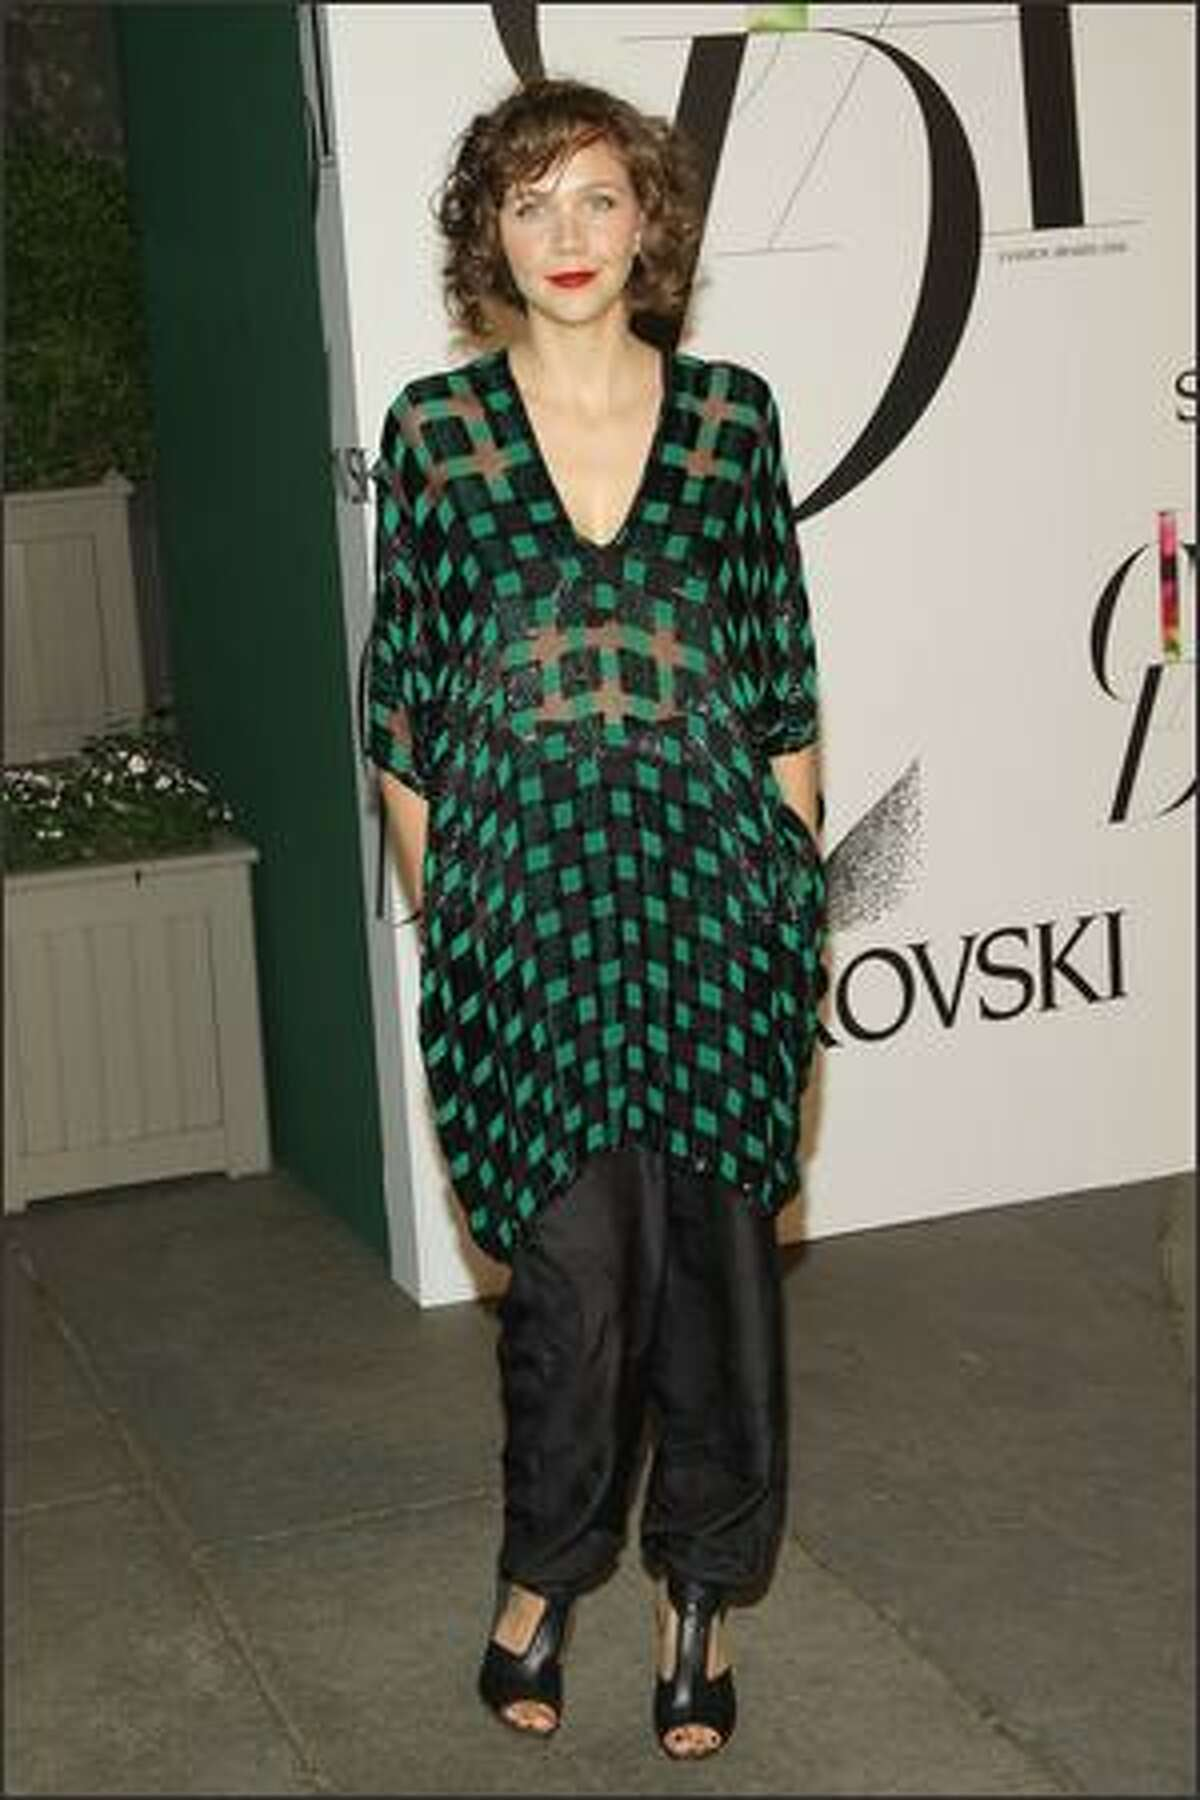 Actress Maggie Gyllenhaal attends the 2008 CFDA Fashion Awards at the New York Public Library on Monday in New York City.